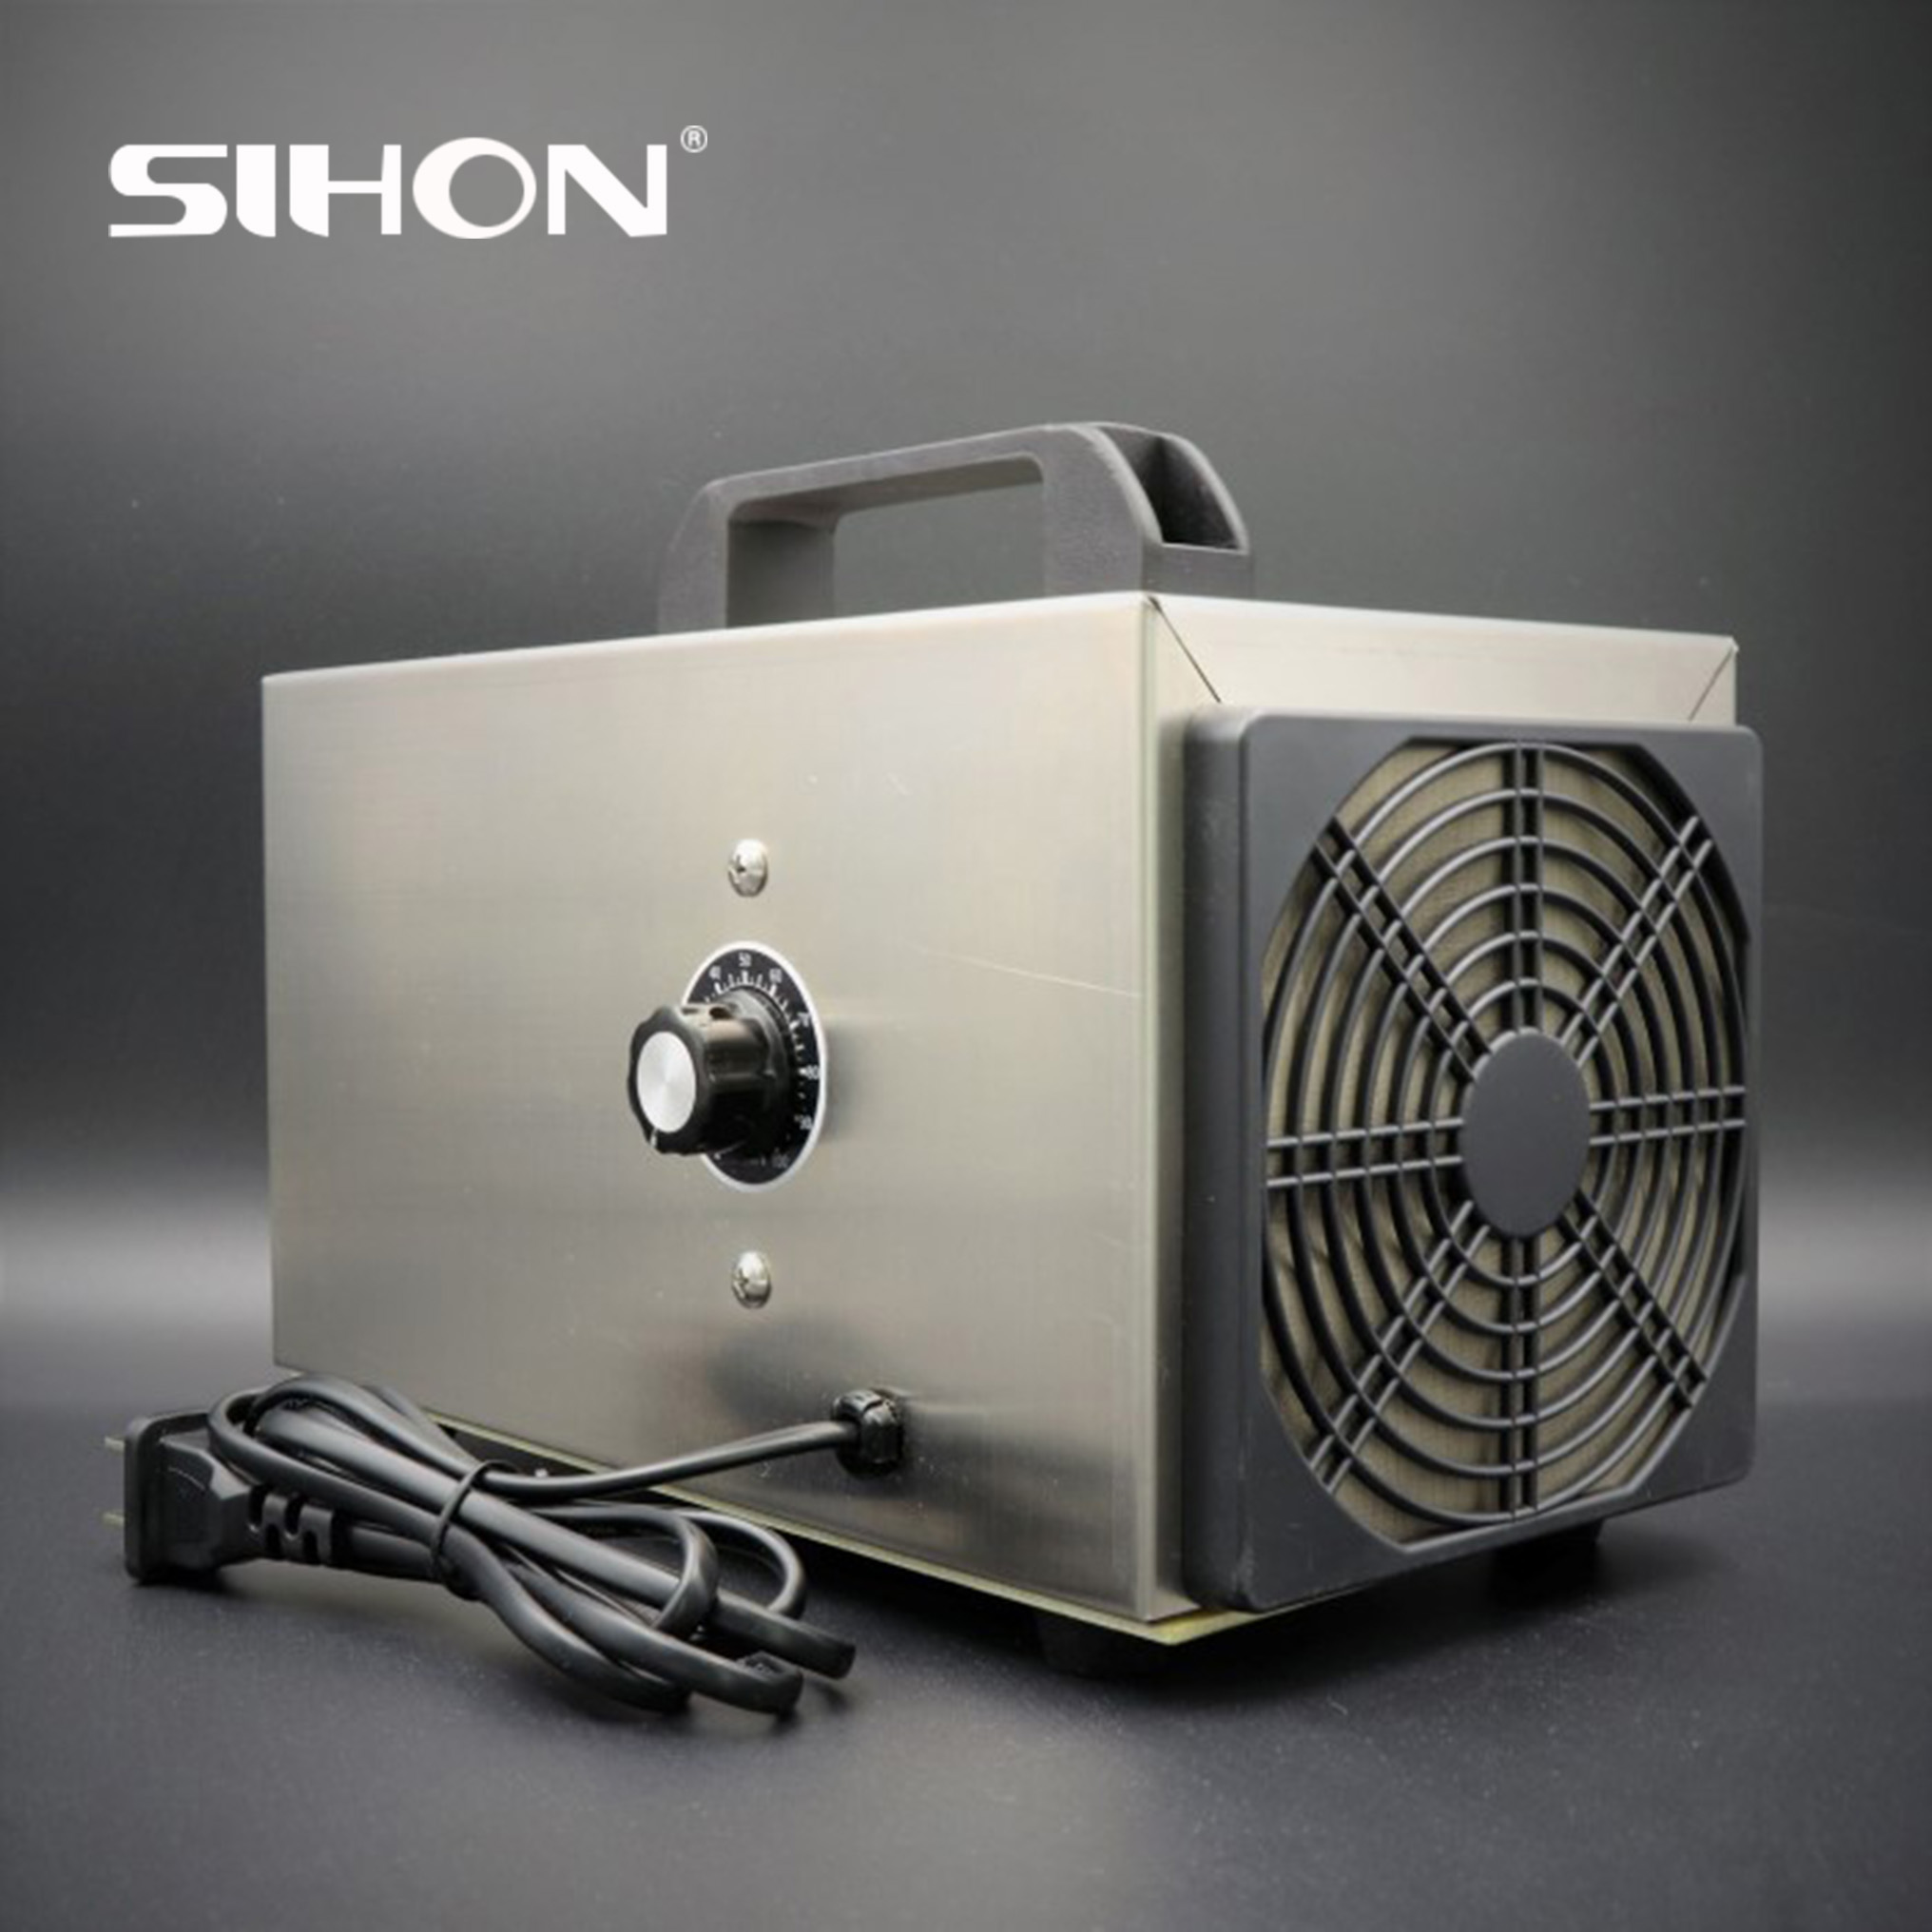 10000mg/h 110v/220v Ozone Generator Machine For Killing Mold, Permanently Removing Tobacco, Pet And Musty Odors At Their Source